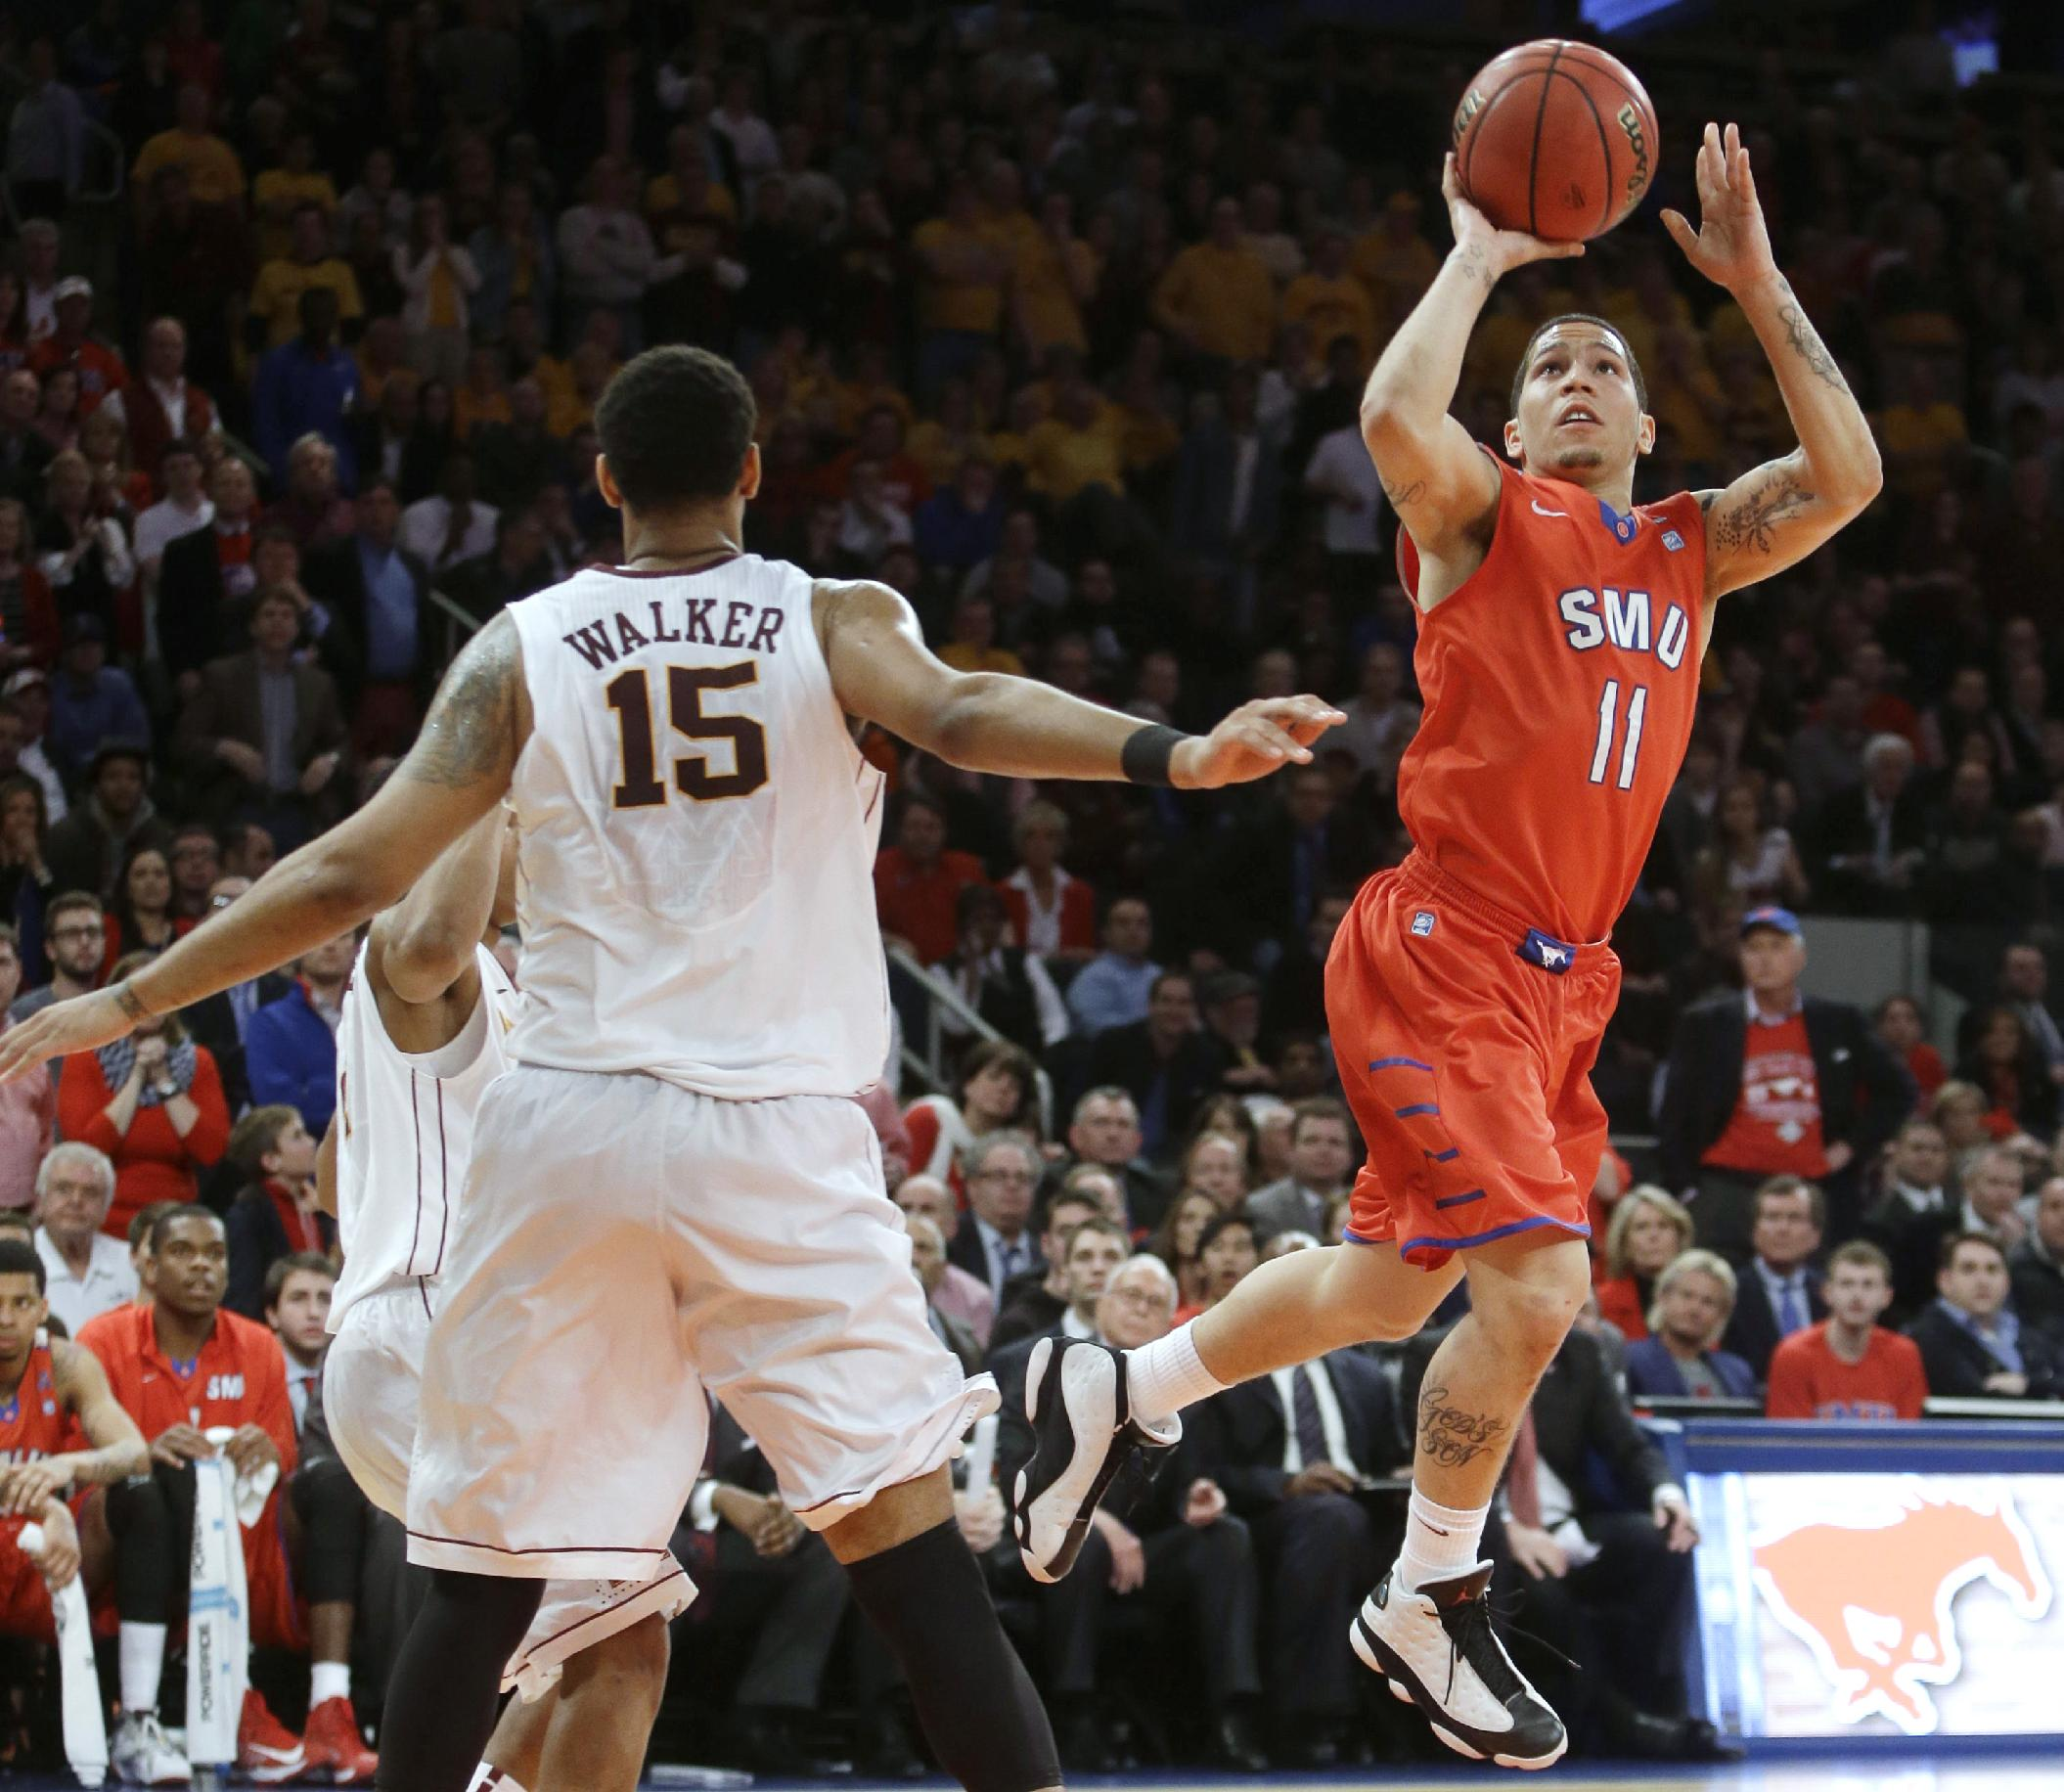 SMU's Nic Moore (11) drives past Minnesota's Maurice Walker (15) during the second half of an NCAA college basketball game in the final of the NIT on Thursday, April 3, 2014, in New York. Minnesota won 65-63